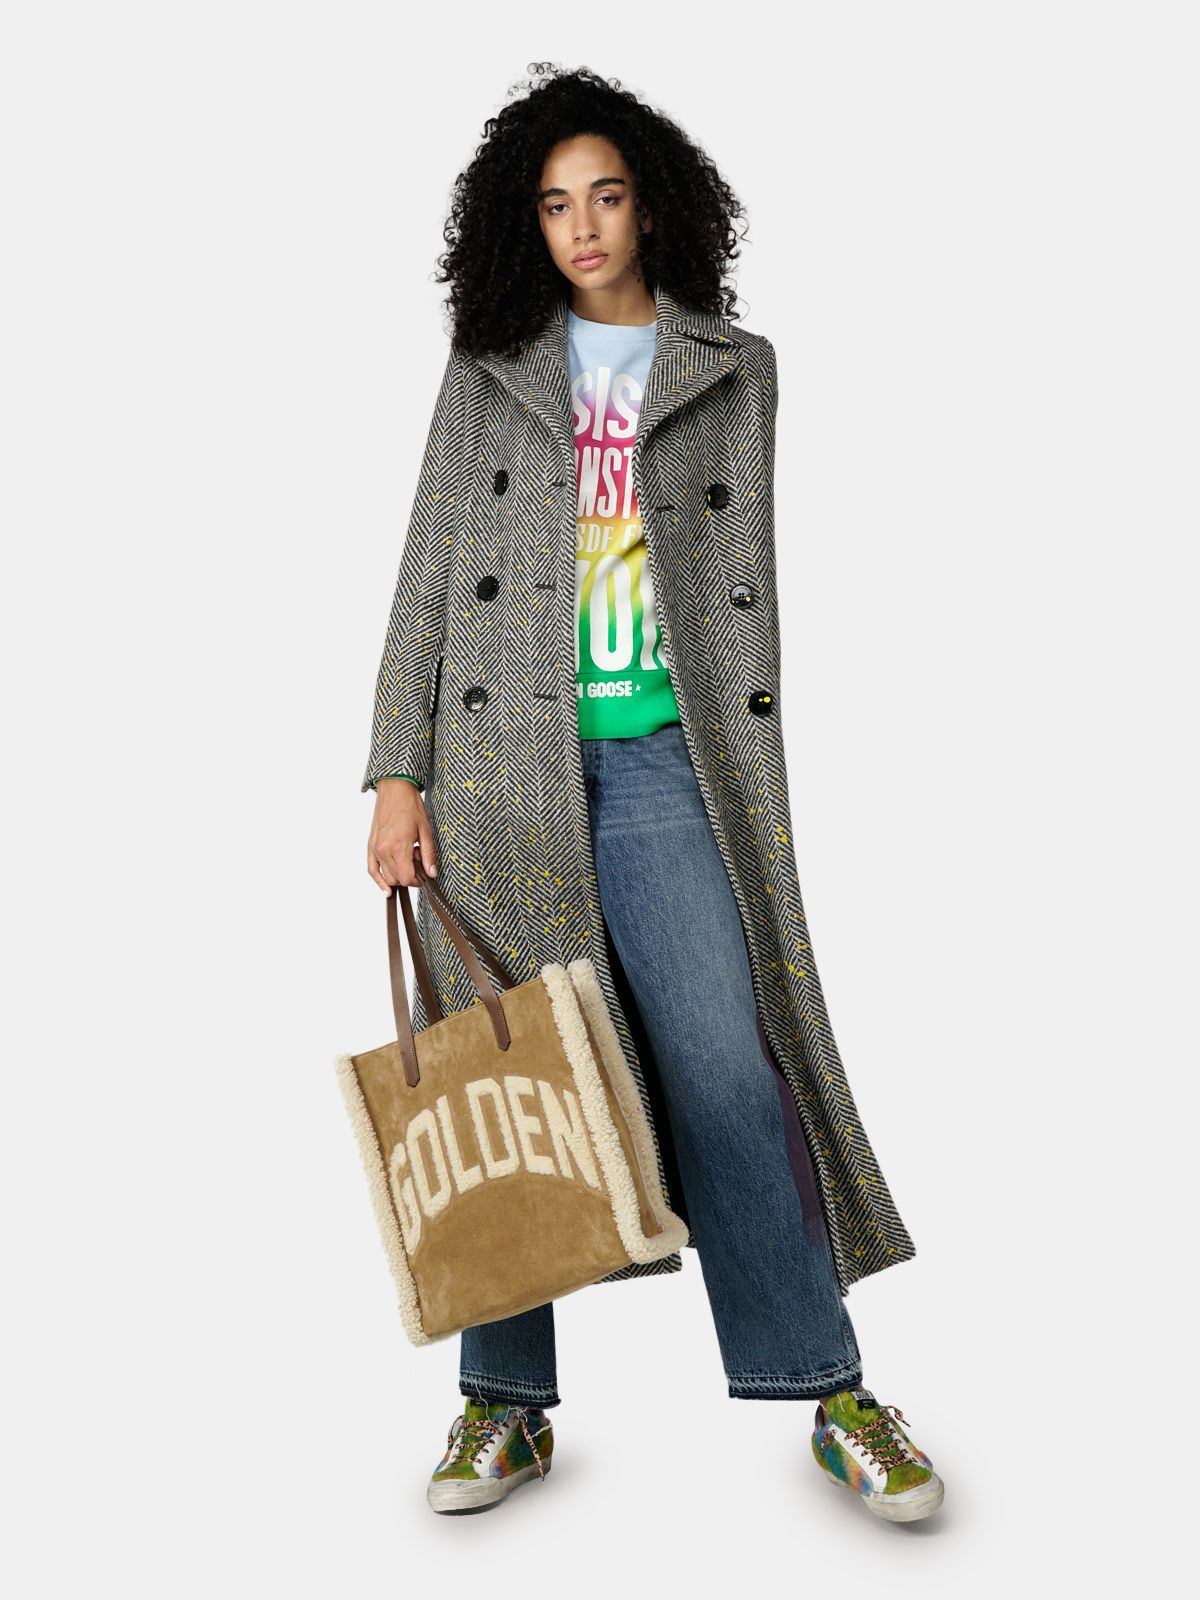 Golden Goose - Athena tie-dye sweatshirt with print on the front in